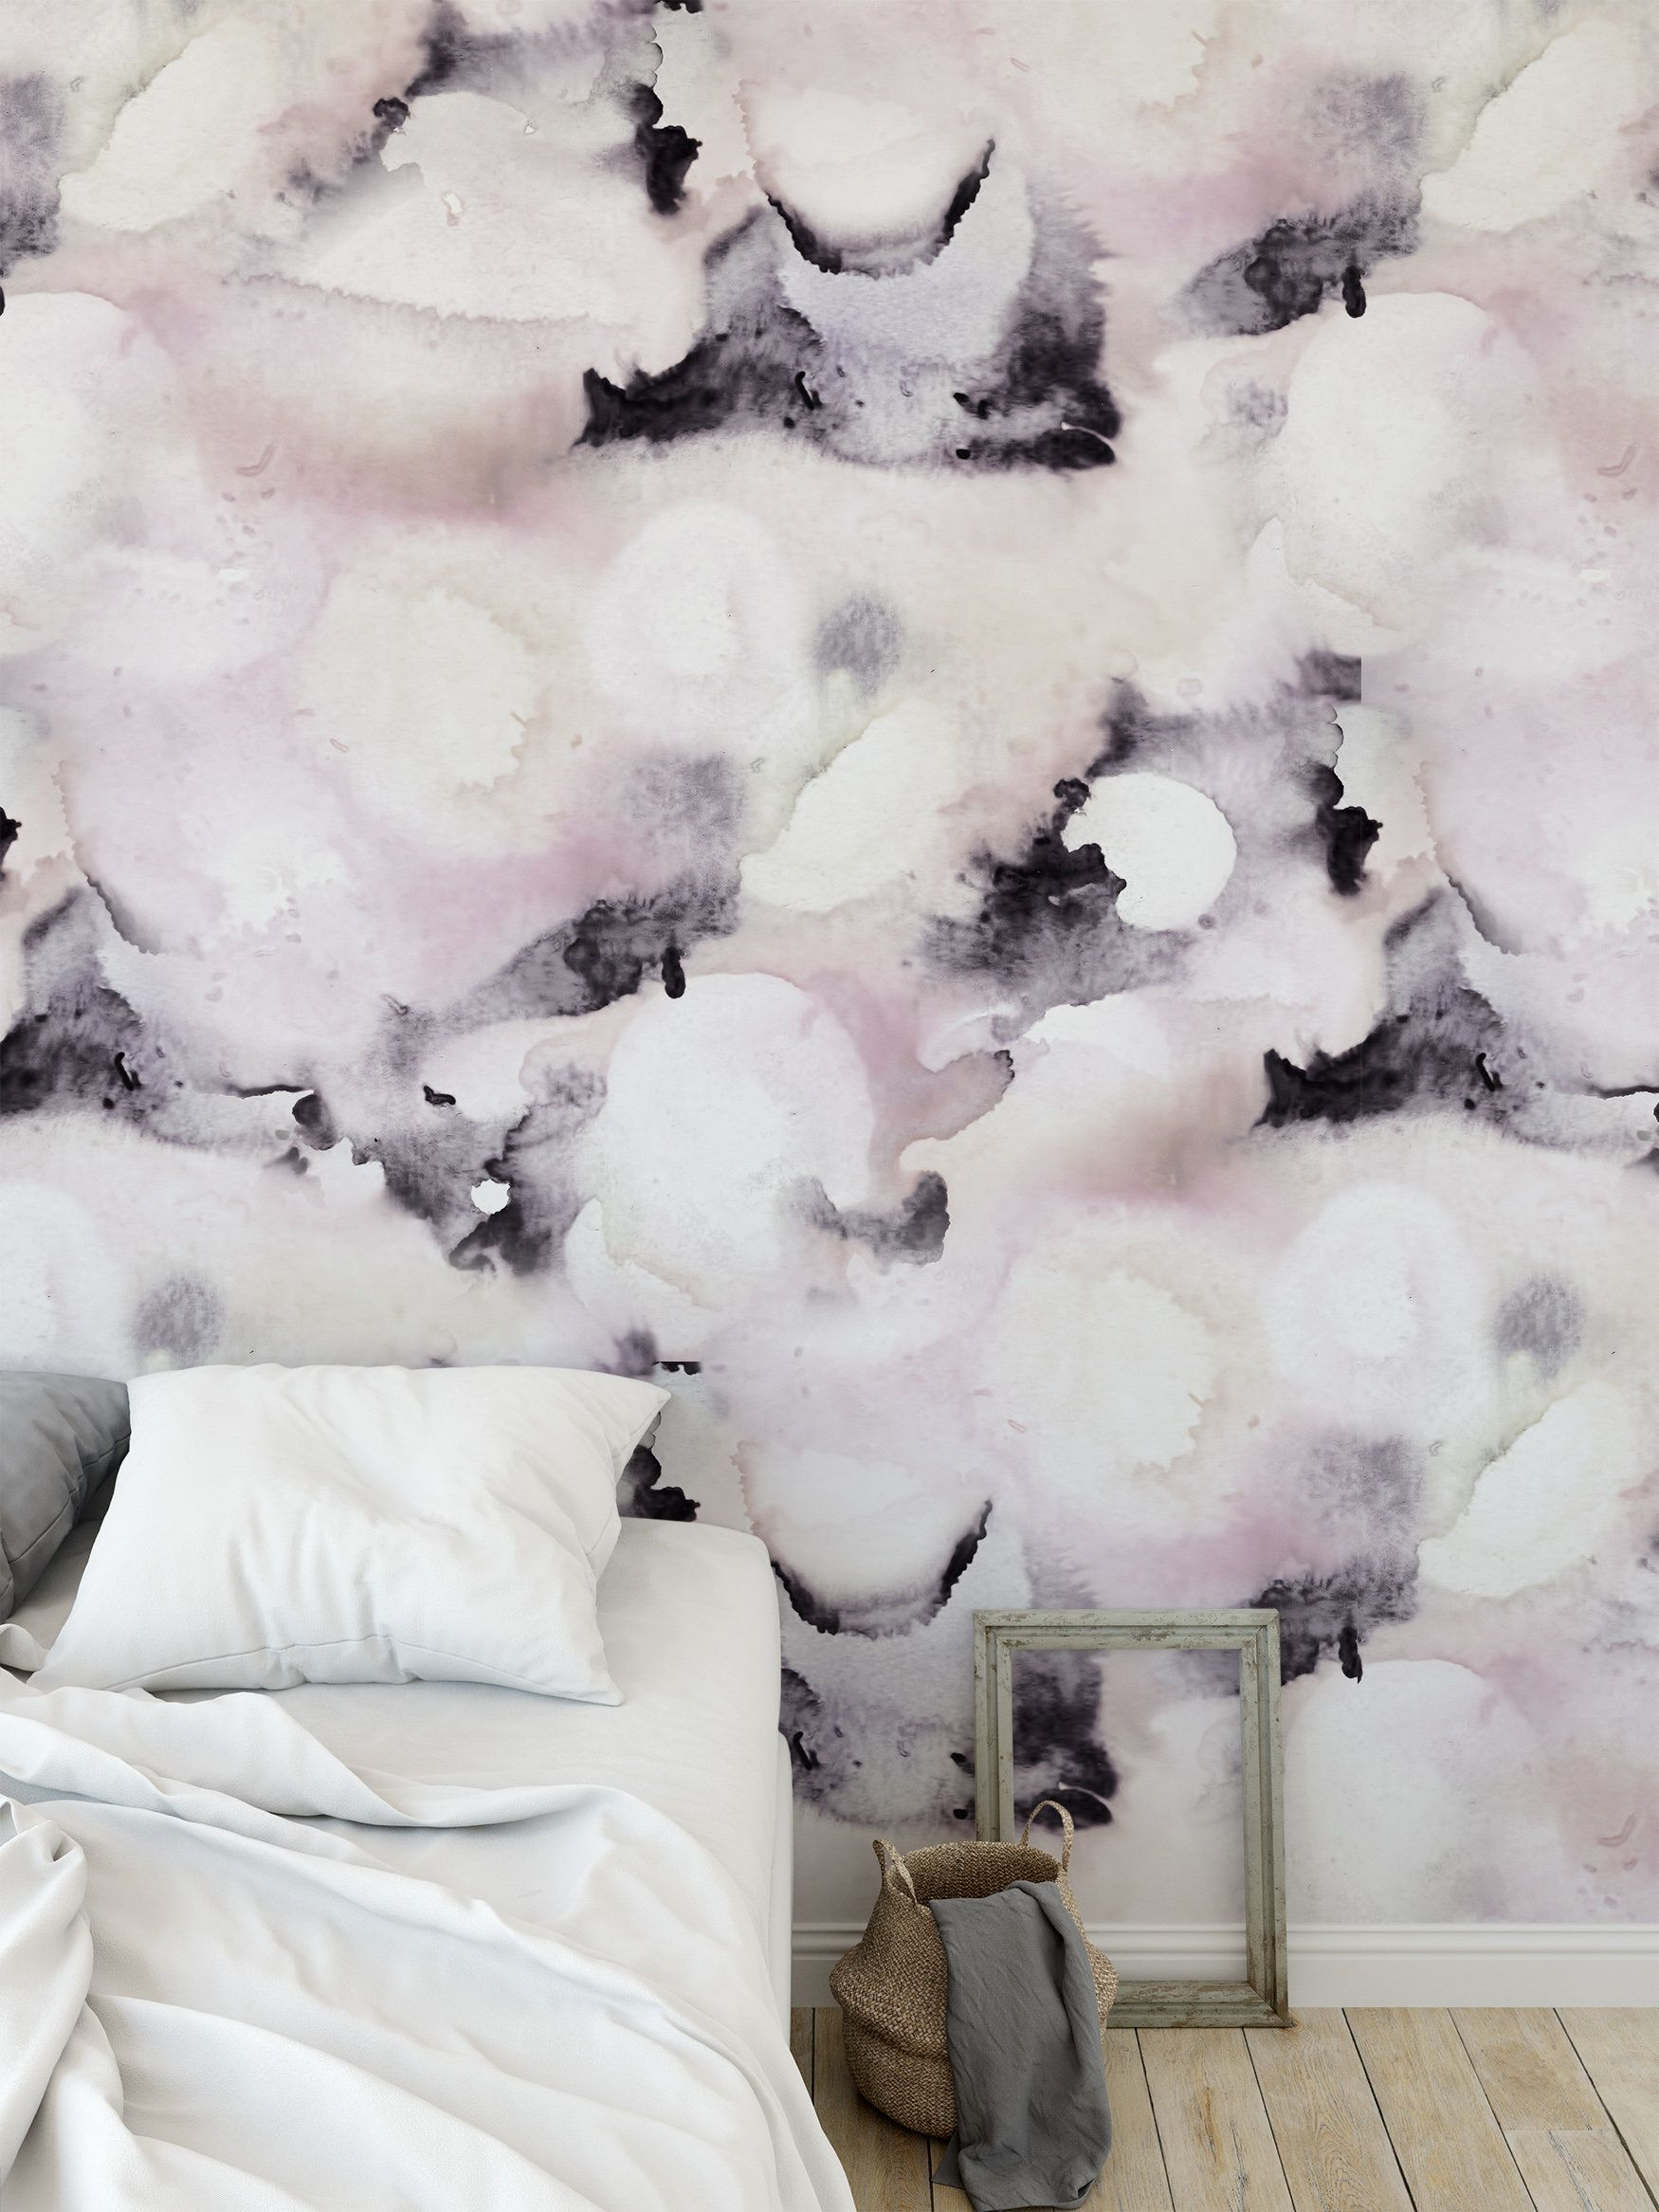 High Quality Repositionable Removable Self Adhesive Wallpaper Etsy Self Adhesive Wallpaper Wallpaper Vinyl Wallpaper